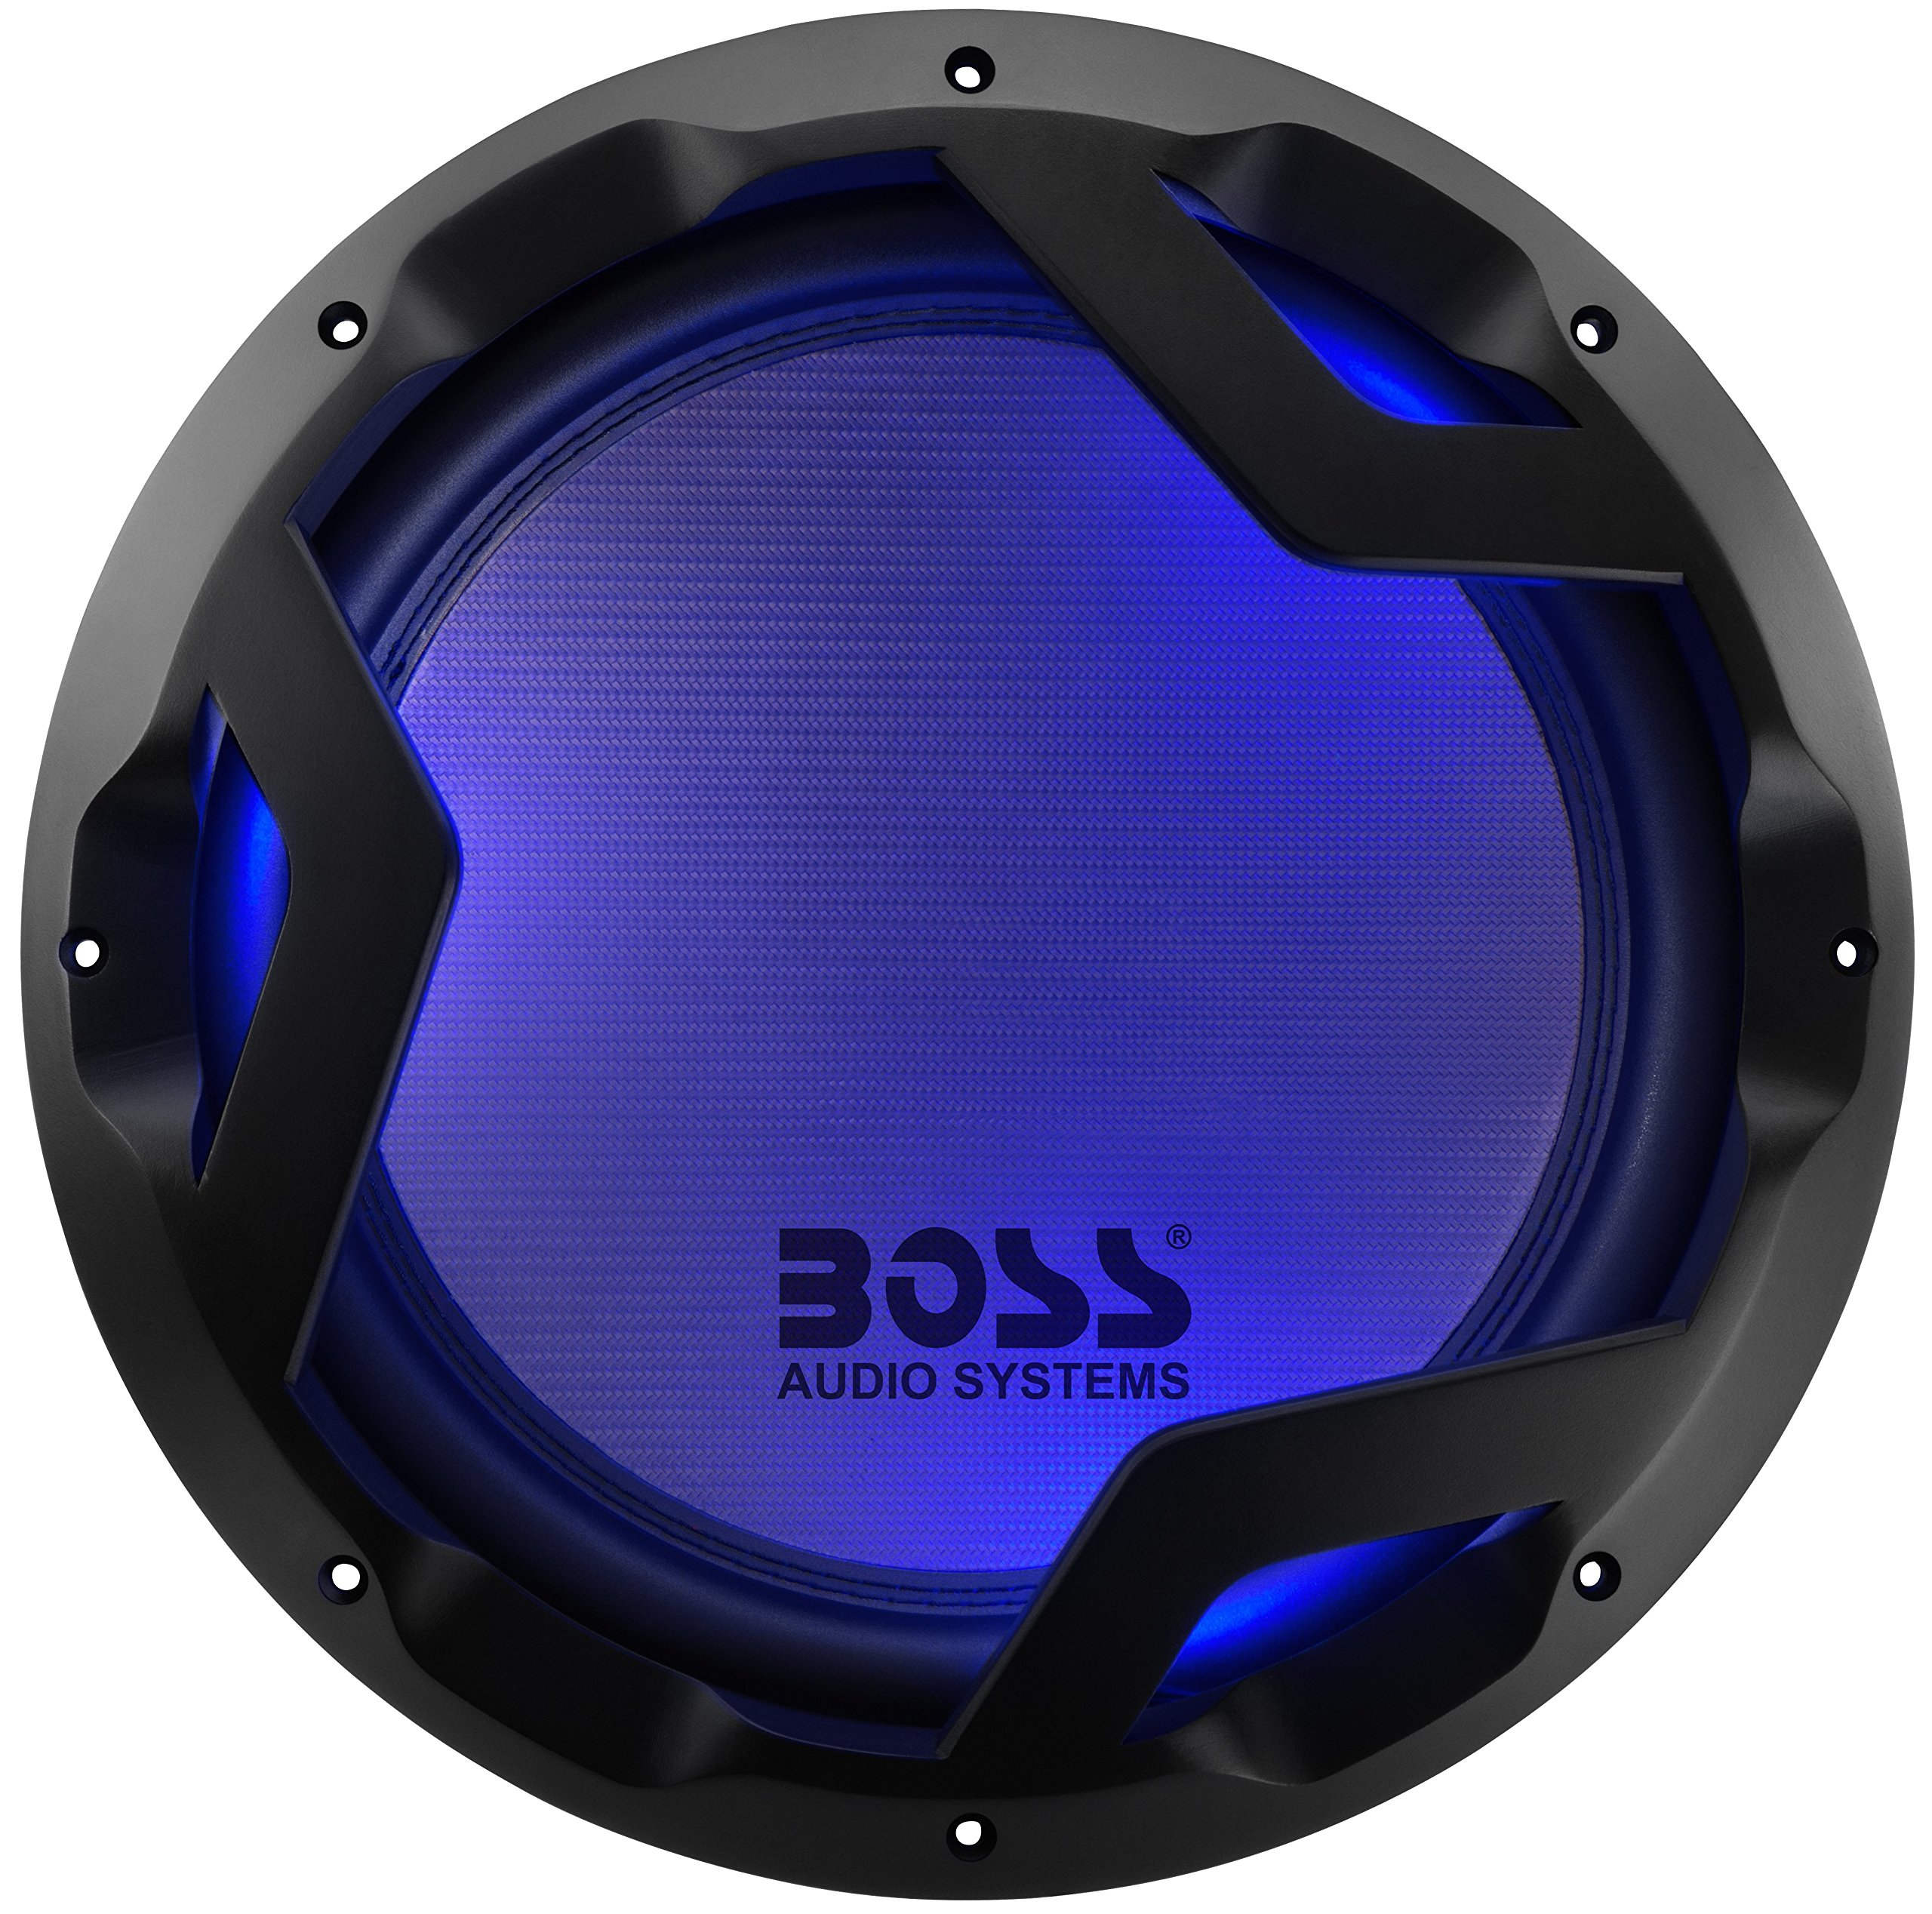 BOSS Audio PD12LED 1600 Watt, 12 Inch, Dual 4 Ohm Voice Coil Car Subwoofer by BOSS Audio Systems (Image #1)